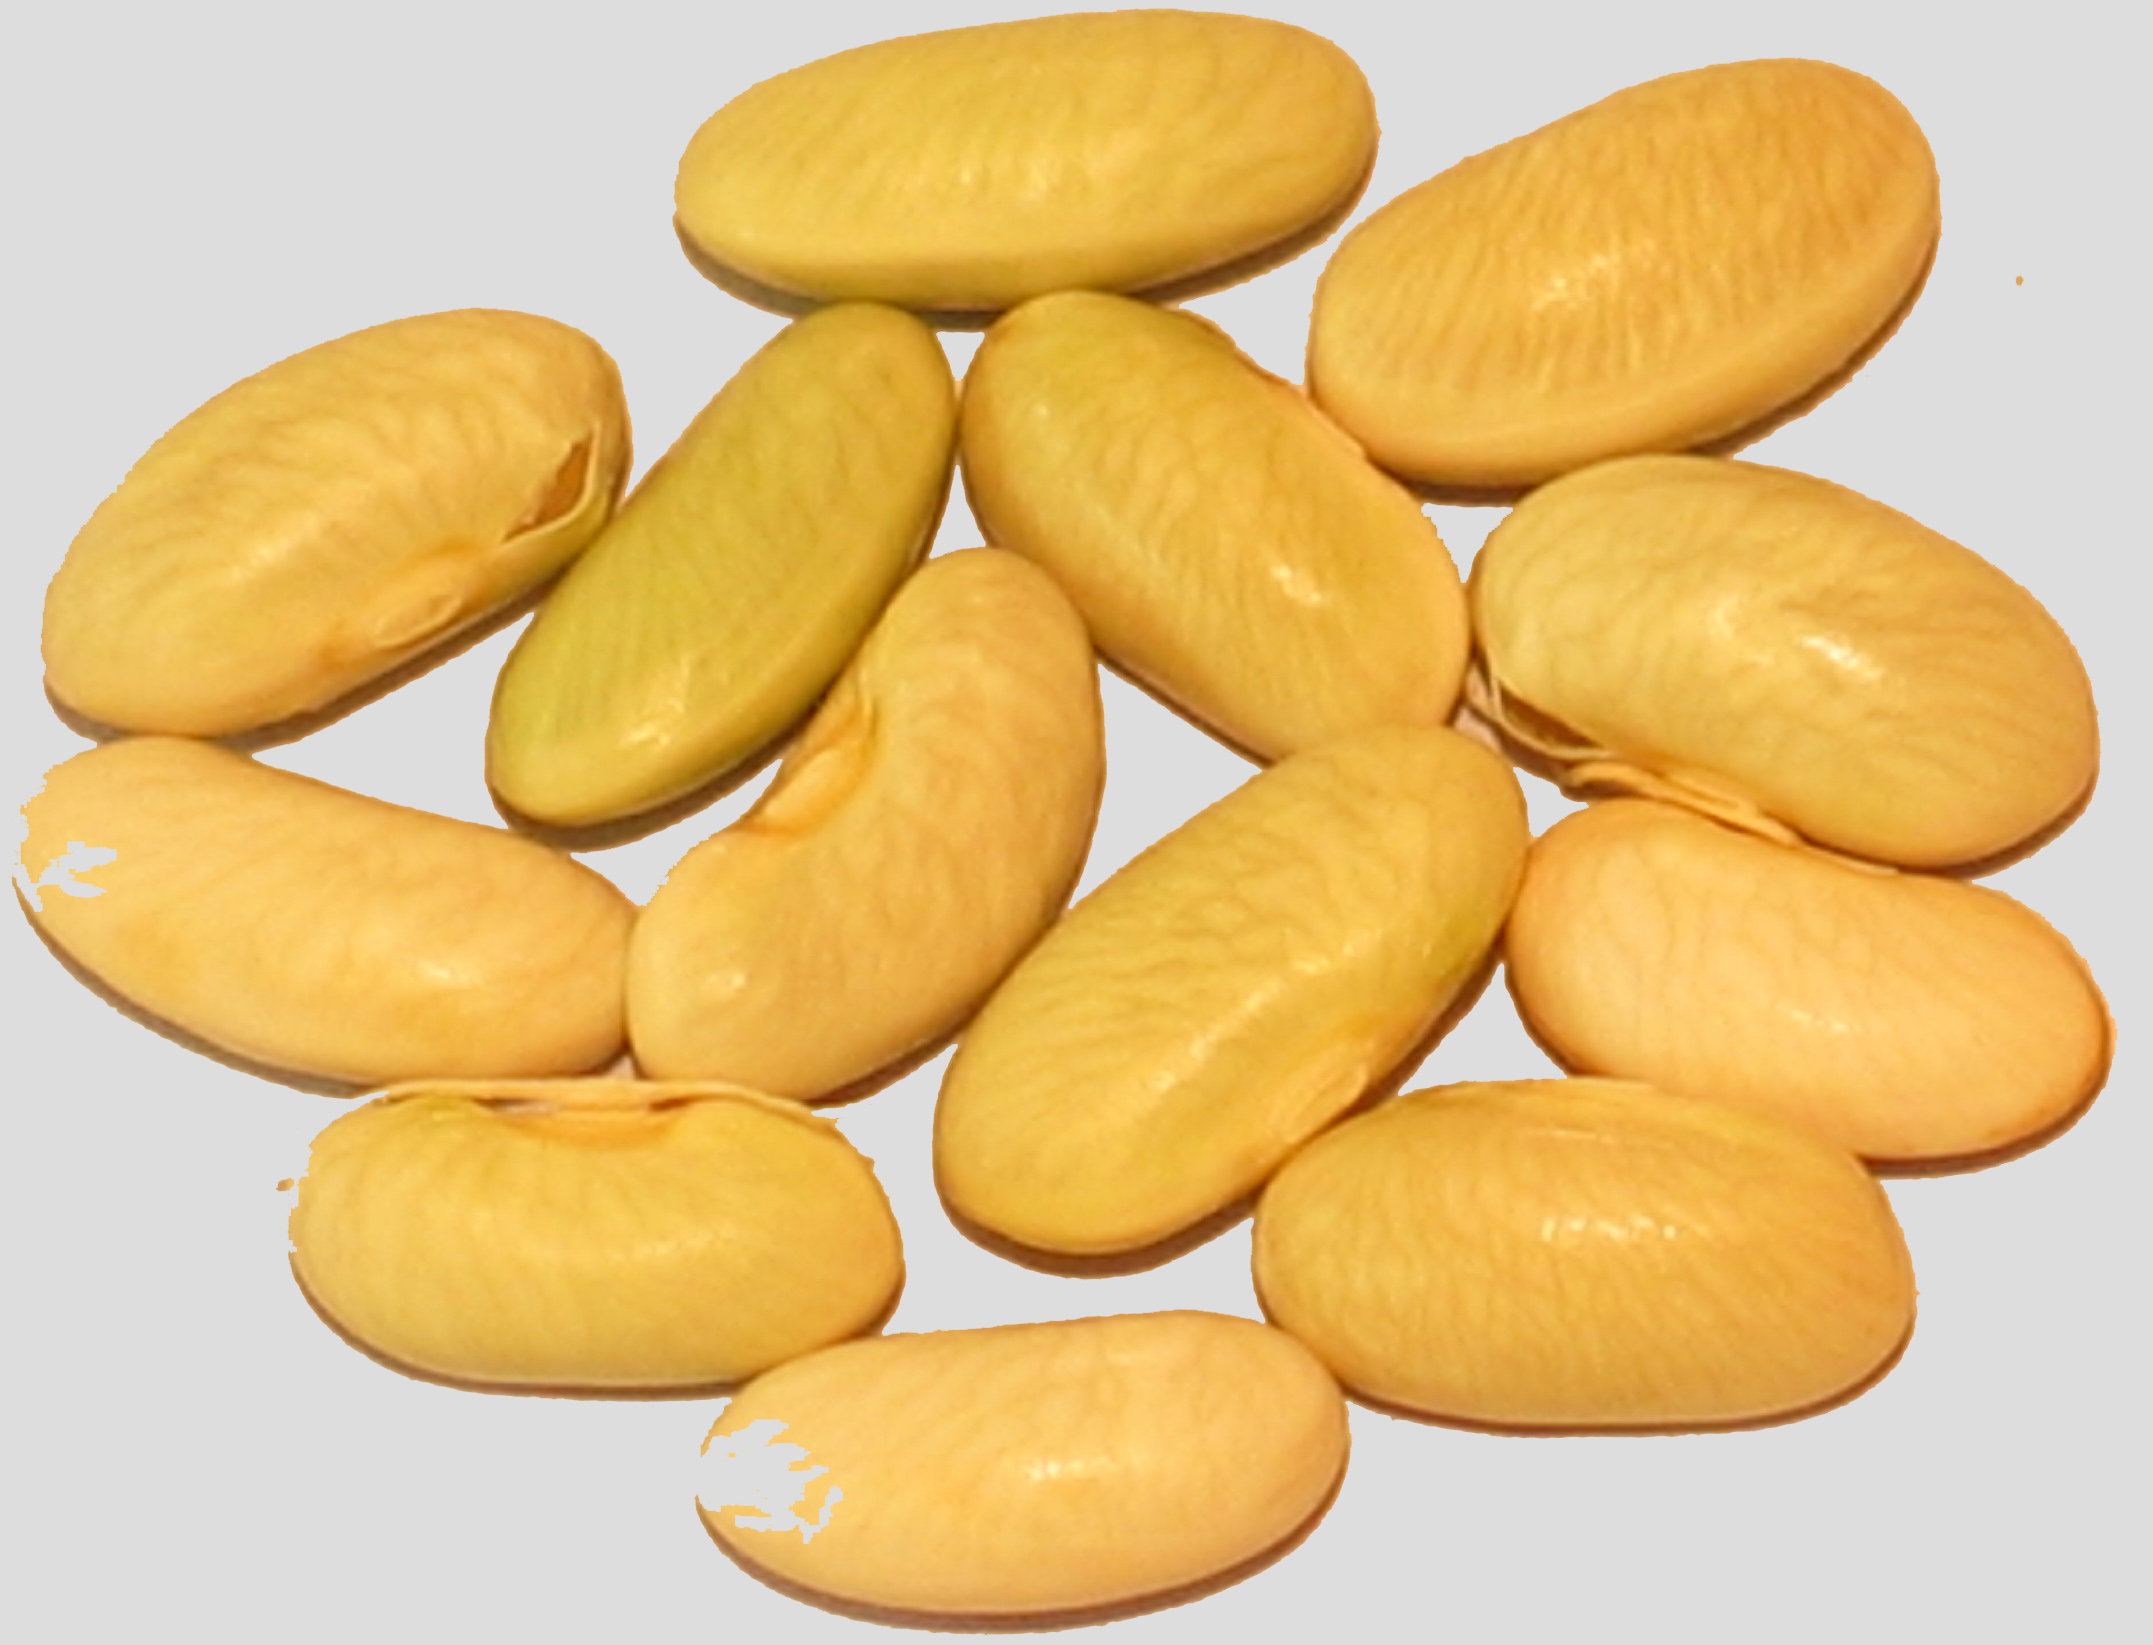 image of Imbali beans